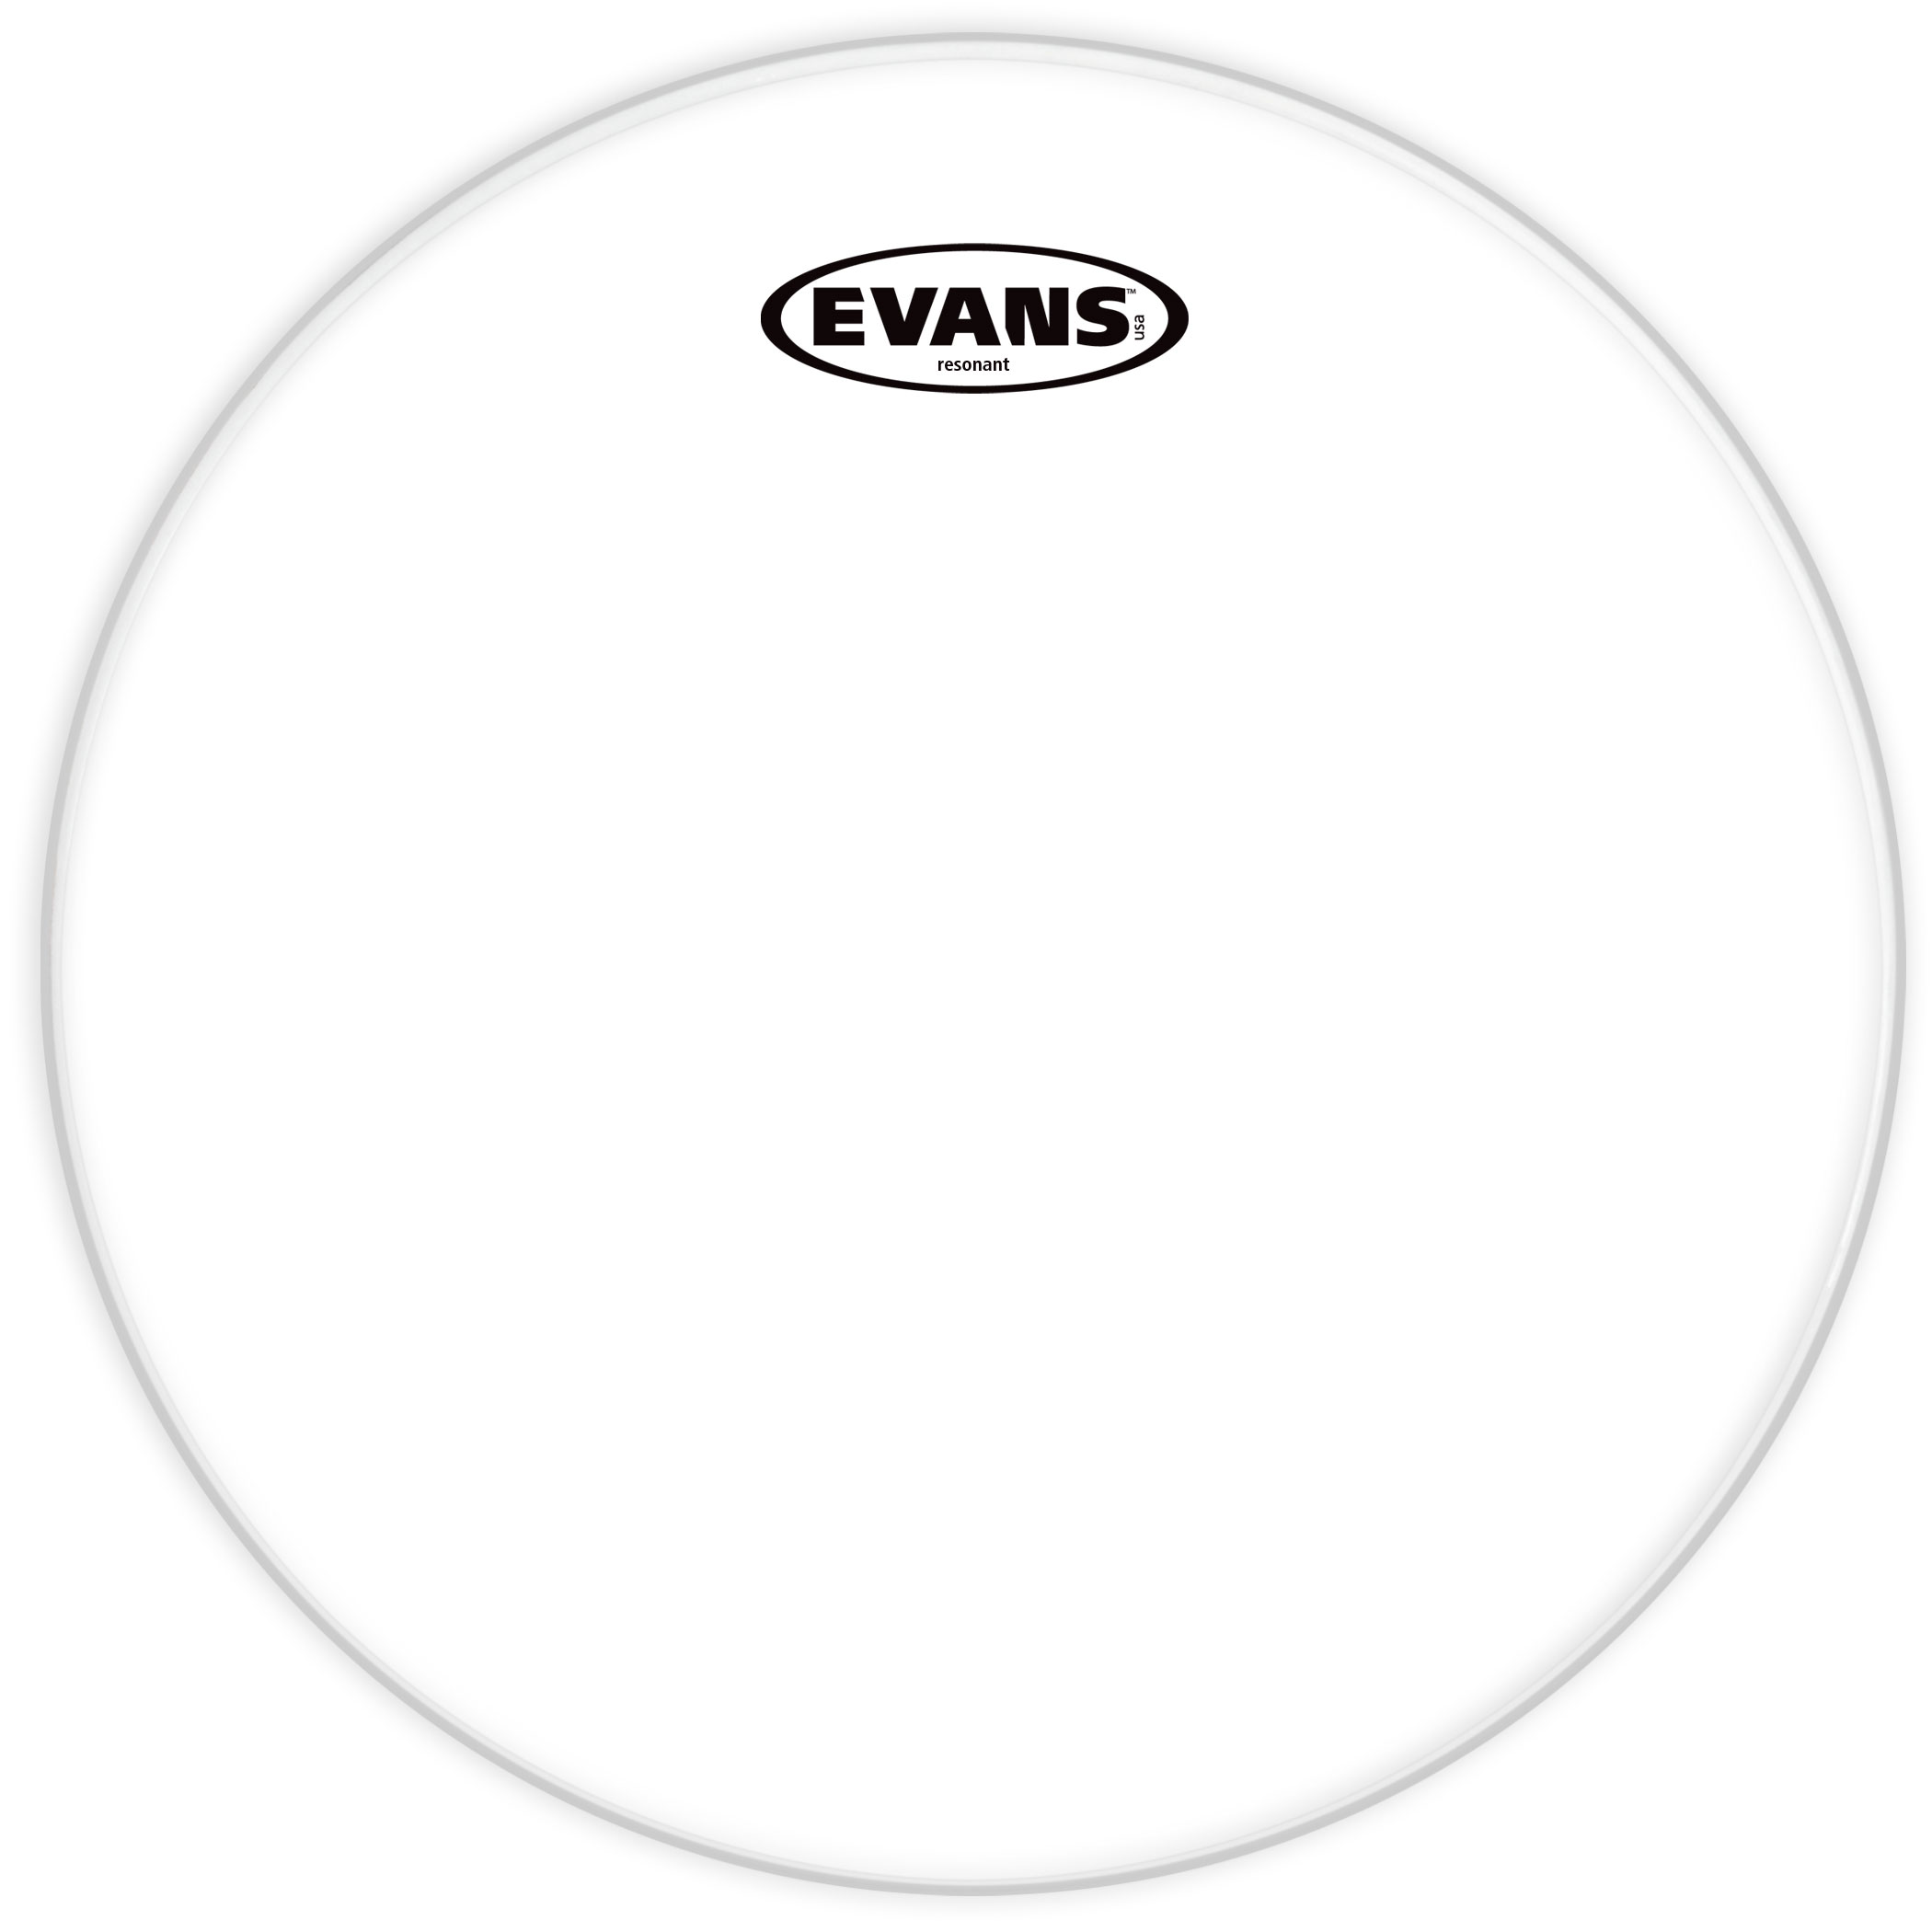 "Evans 12"" Resonant Glass Head"